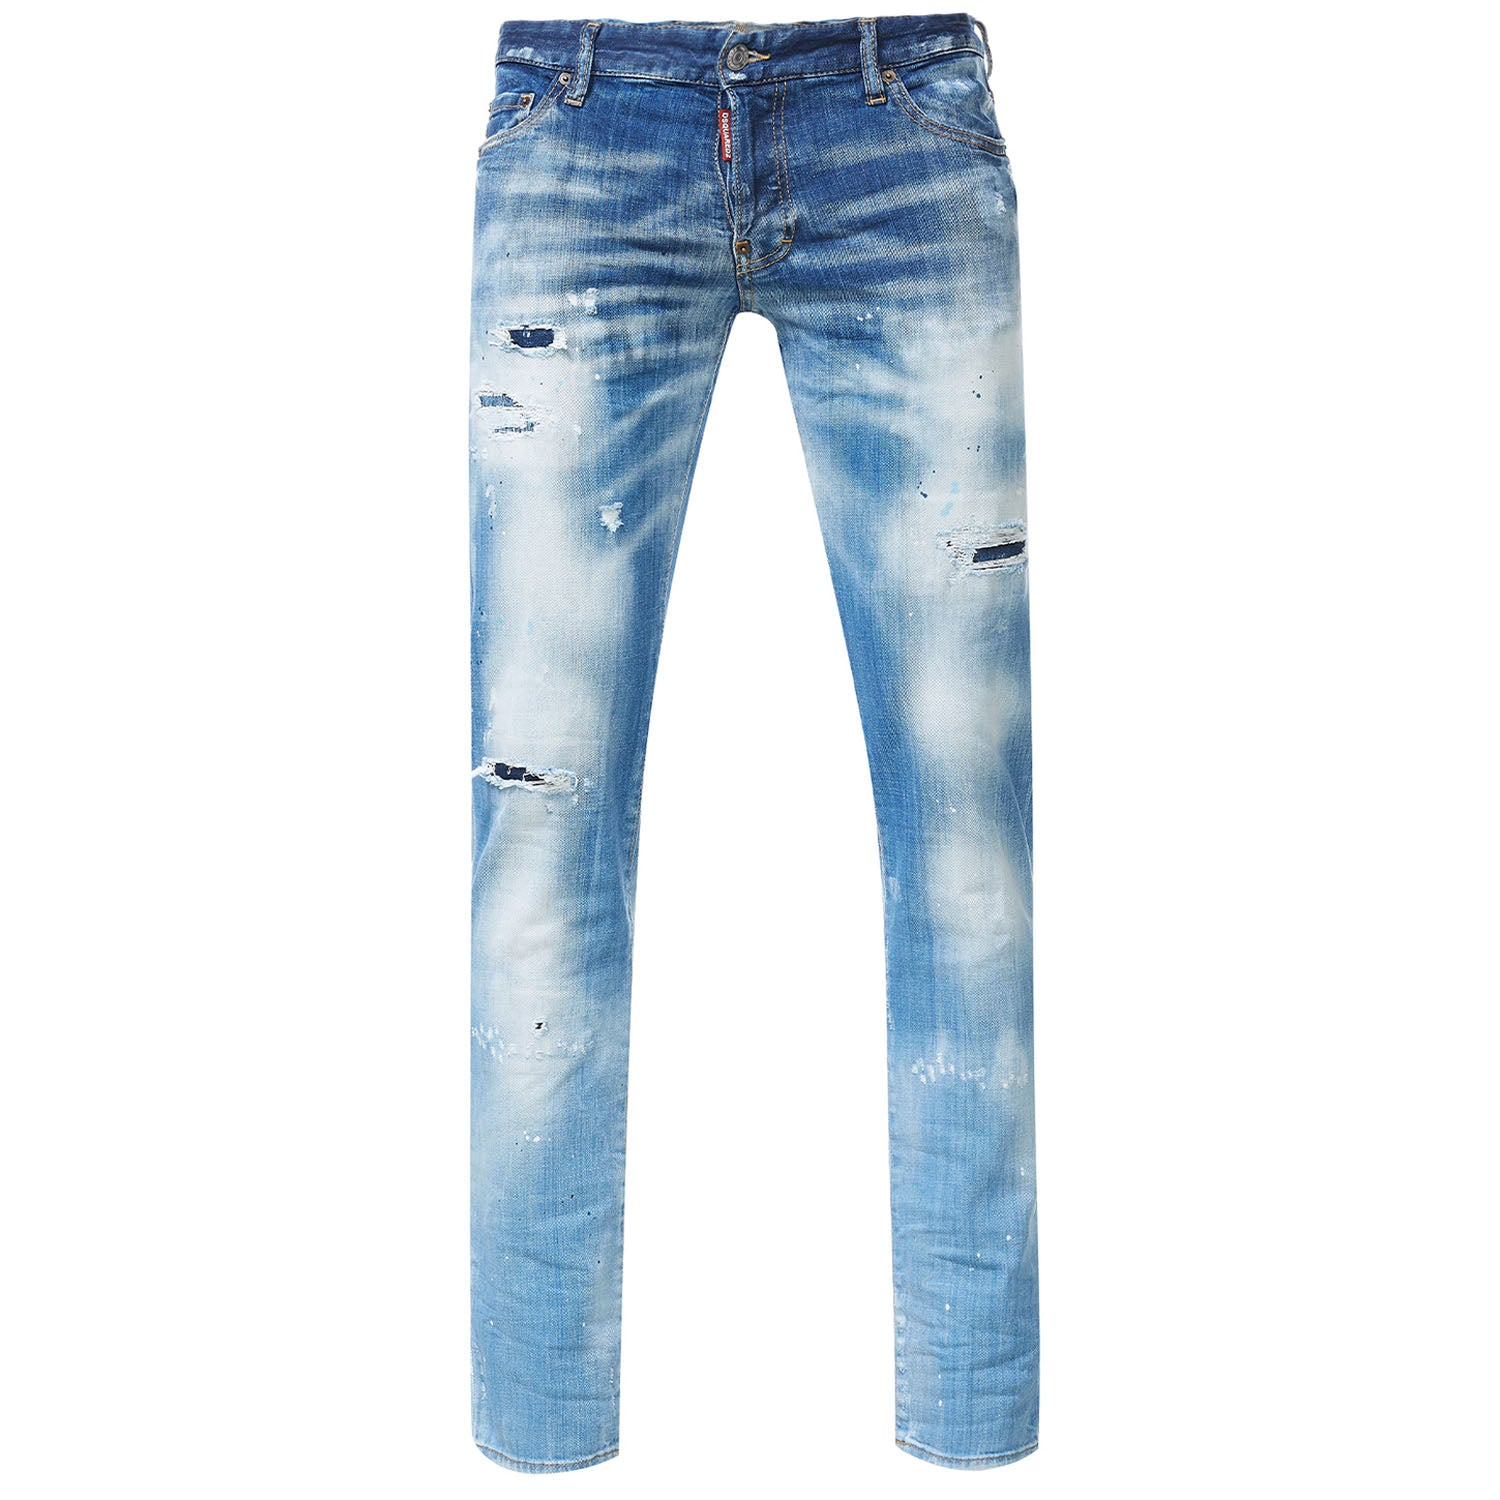 DSquared2 Slim Jeans Faded Wash